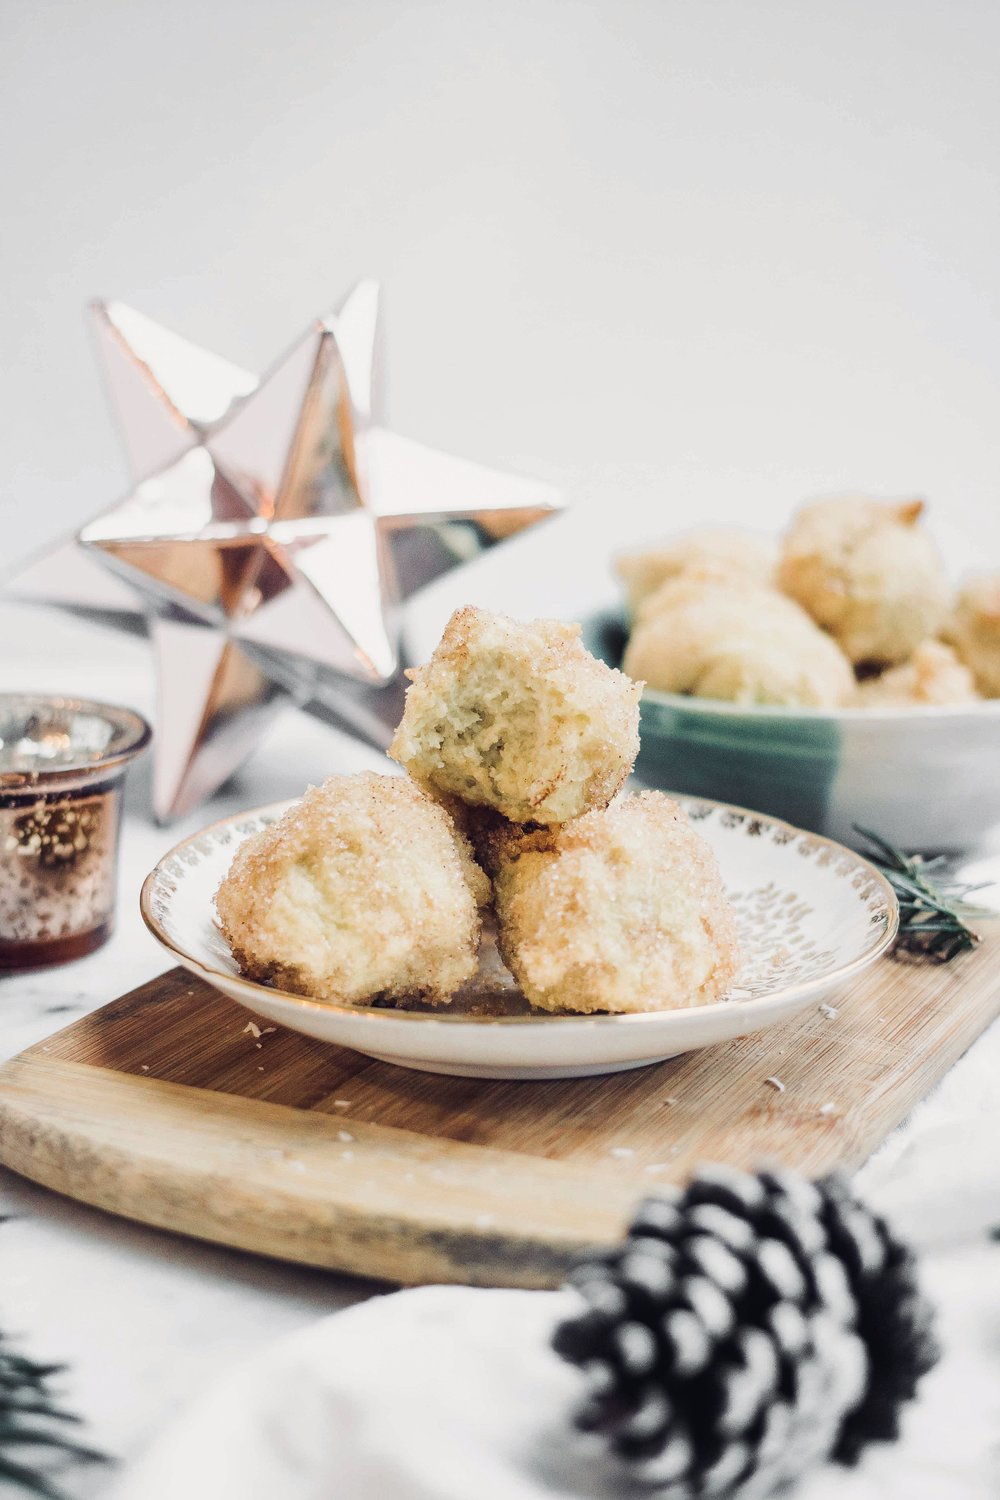 Gluten Free Sonhos Christmas Dreams - A delicious gluten free puffed pastry that is a traditional Portuguese dessert, and is especially popular around the Christmas table in Portugal during the holiday season #glutenfree #sonhos #portuguesebaking #portuguesechristmas